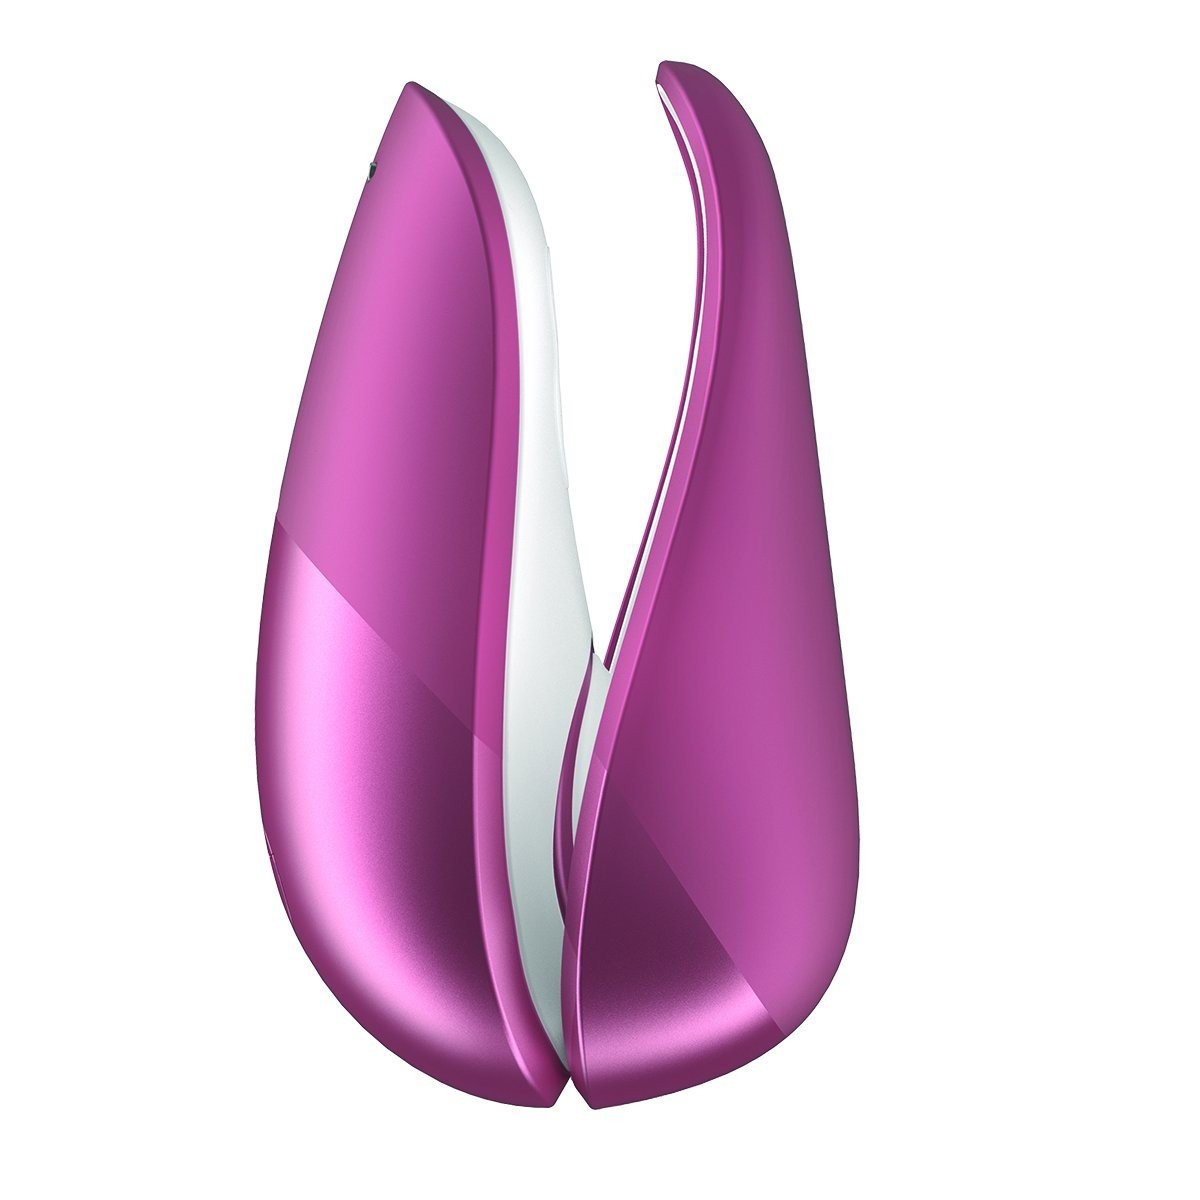 Womanizer Liberty Clitoral Stimulator Clitoral Stimulators Womanizer